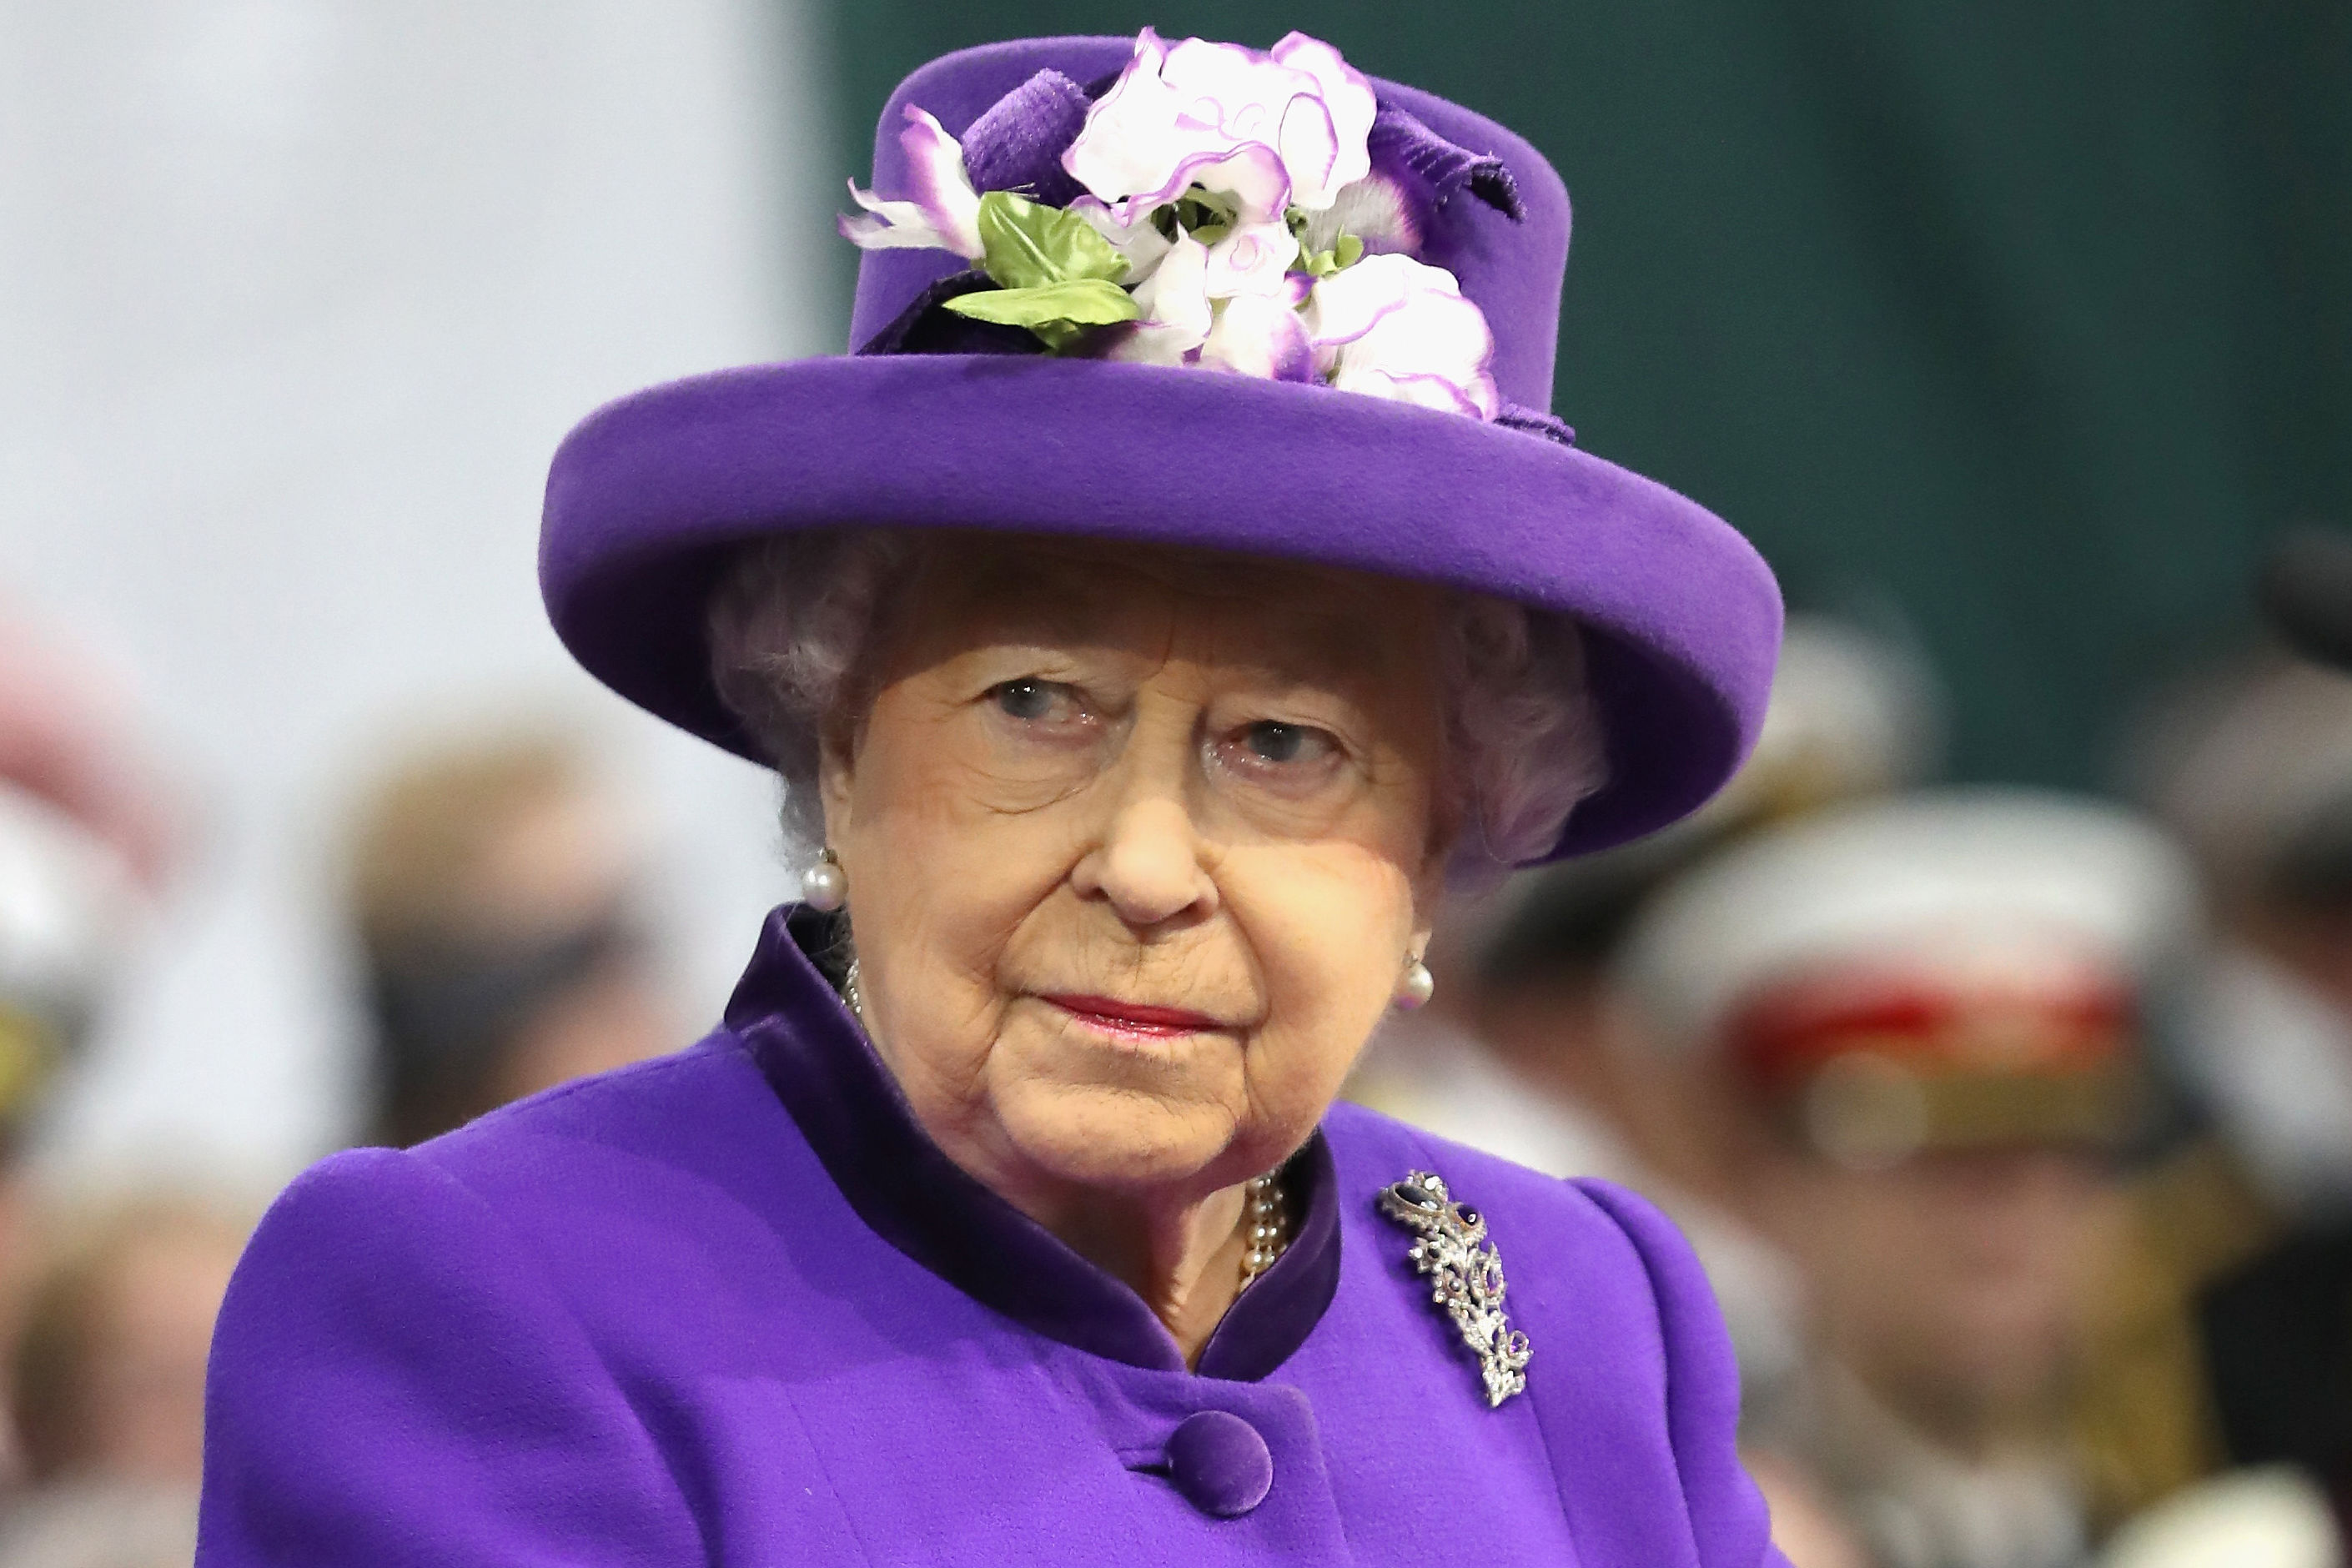 This Is How the Queen Uses Her Jewelry To Send Her Staff Secret Signals